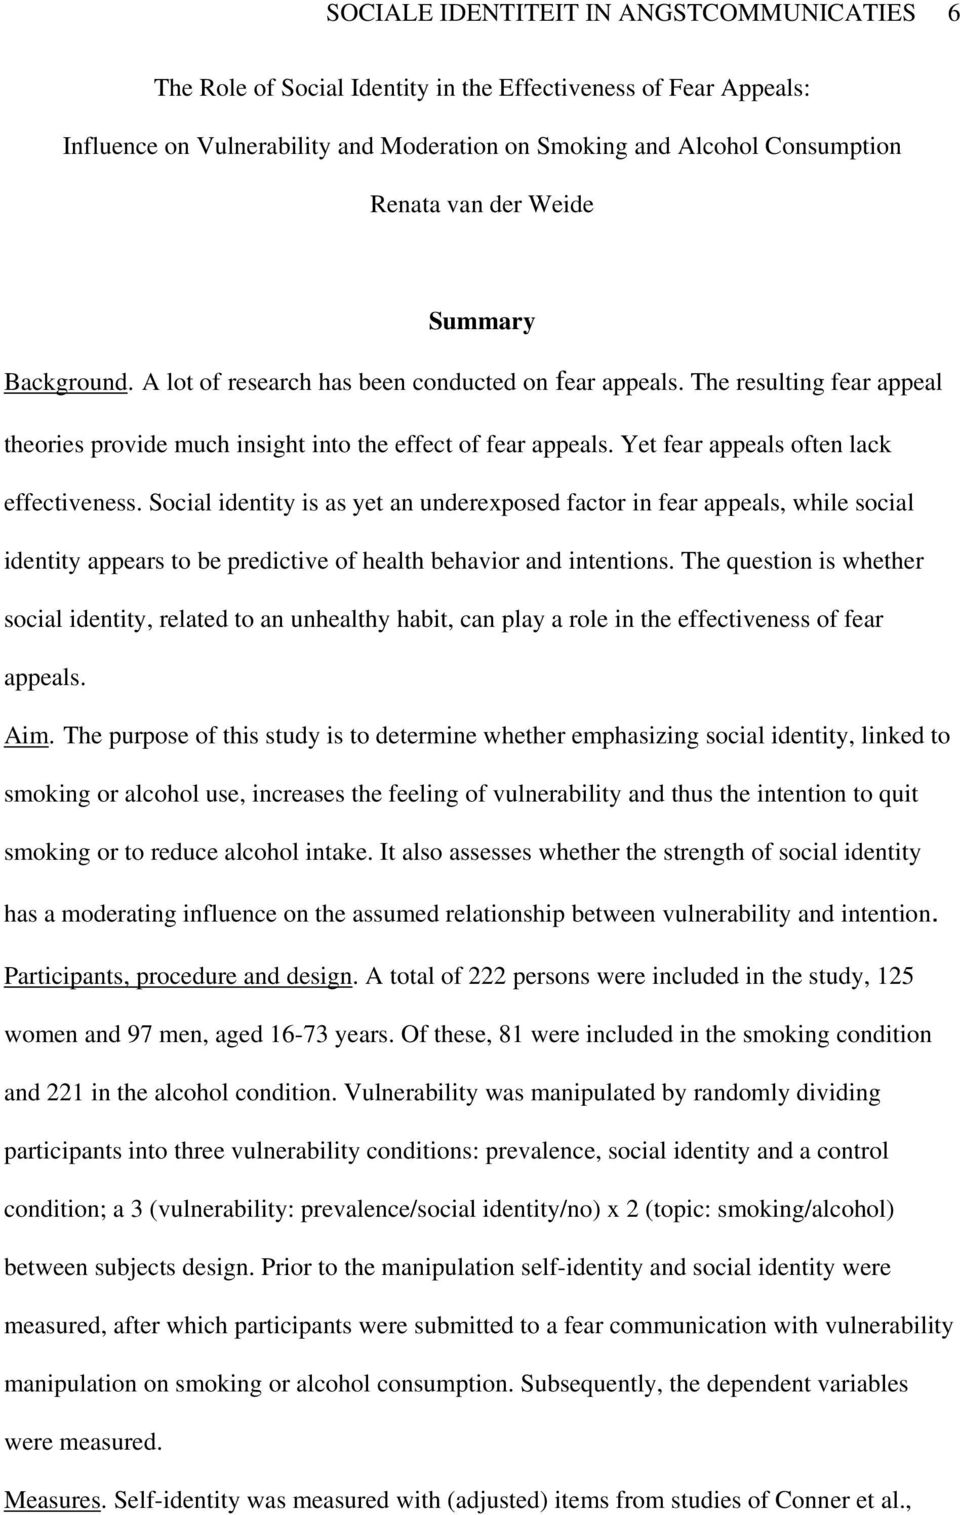 Yet fear appeals often lack effectiveness. Social identity is as yet an underexposed factor in fear appeals, while social identity appears to be predictive of health behavior and intentions.